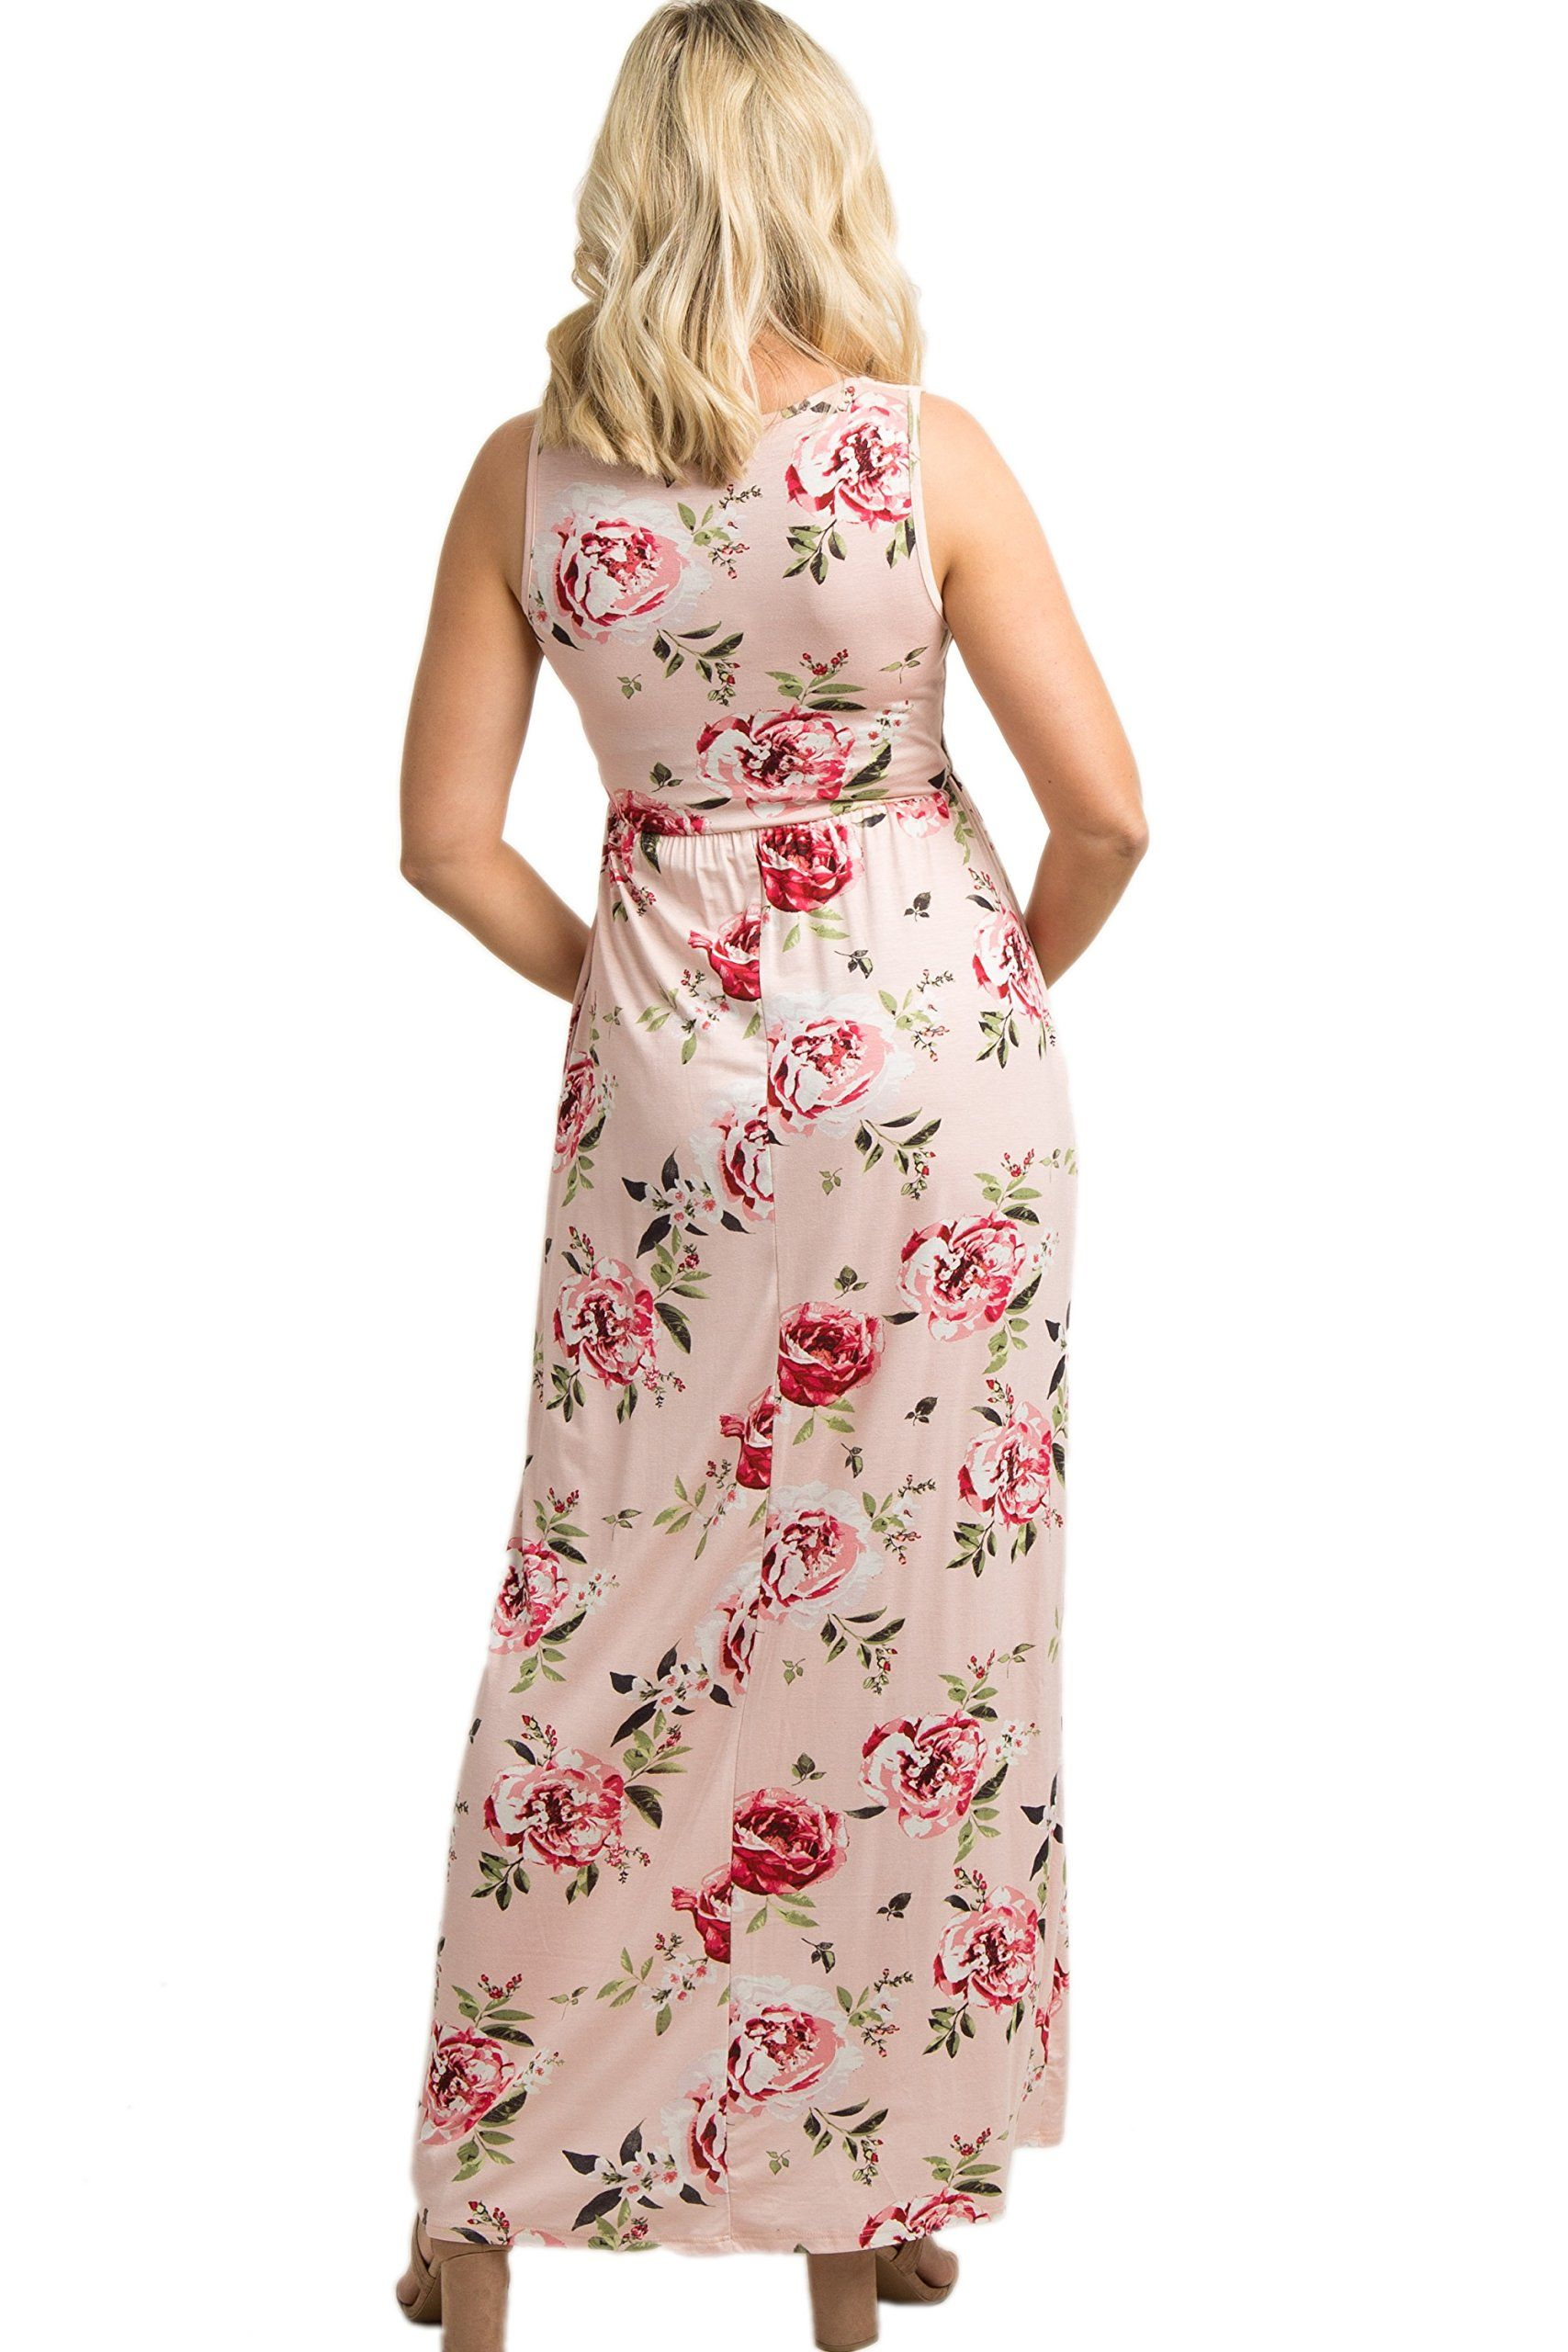 c351fa20bf1cf Maternity Fashion - PinkBlush Maternity Pink Rose Print Sleeveless Maxi  Dress Large *** You can discover even more information by seeing the image  link.